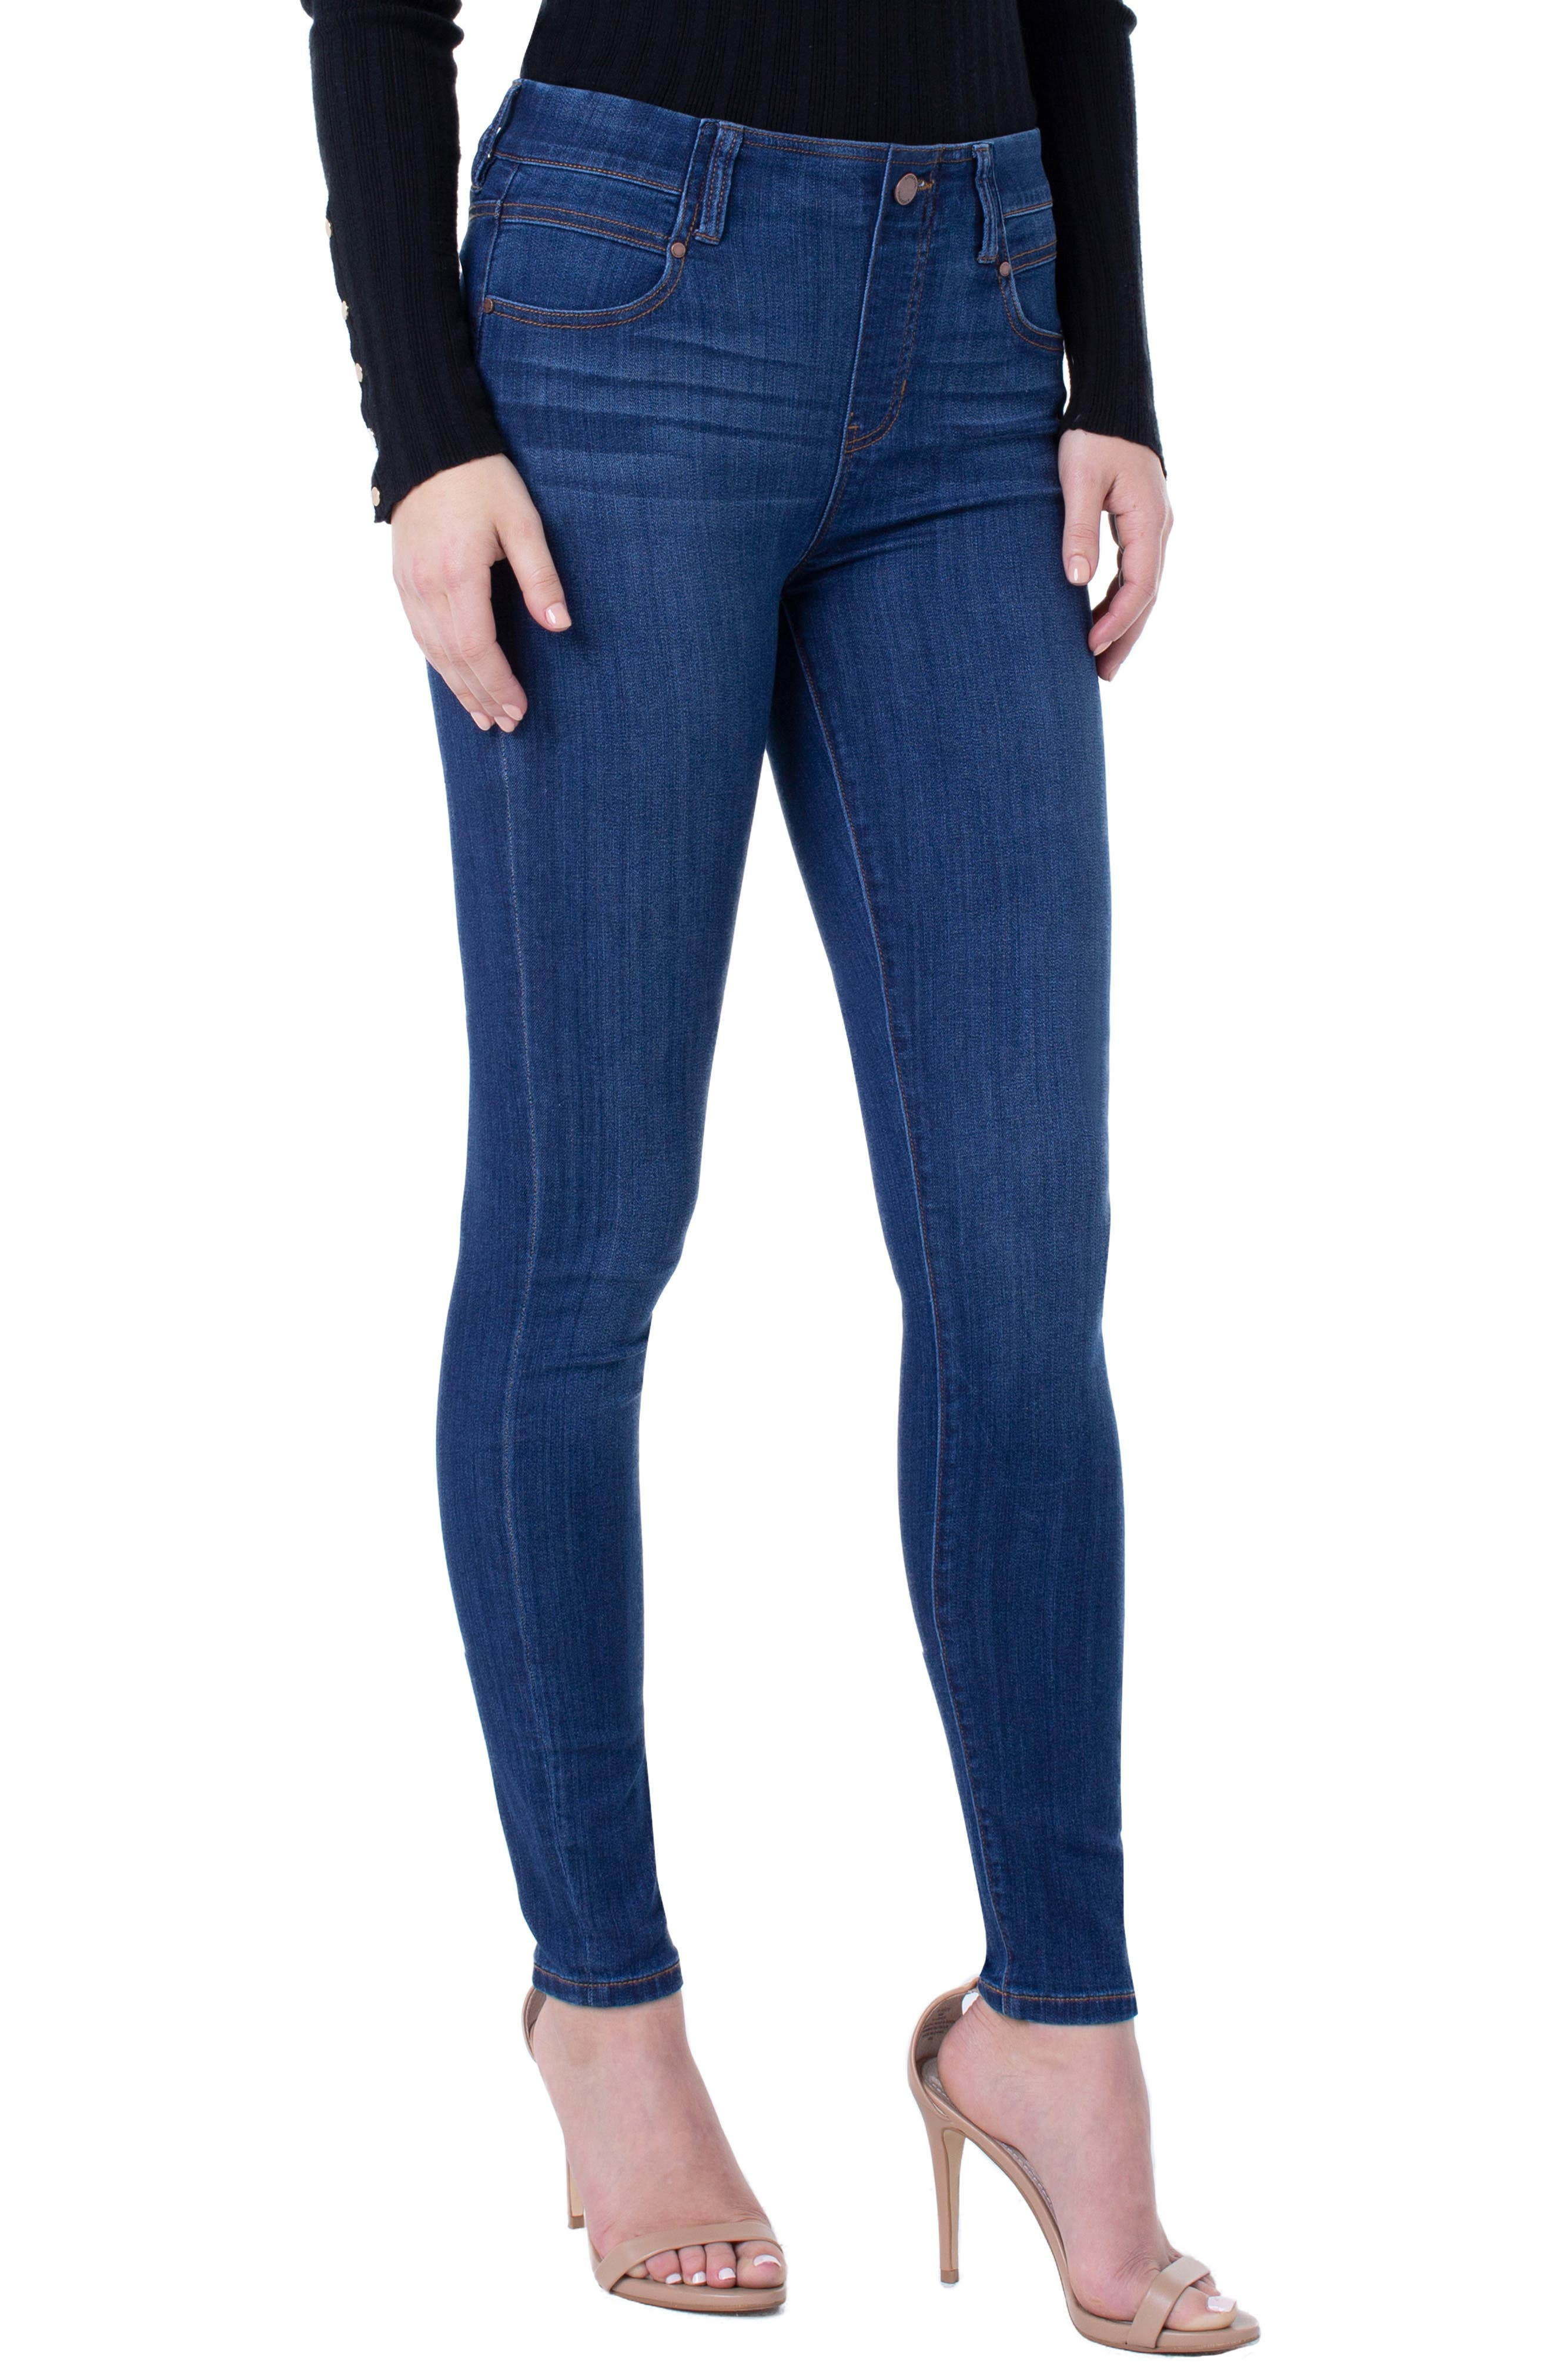 Petite Women's Liverpool Gia Glider Pull-On Skinny Jeans